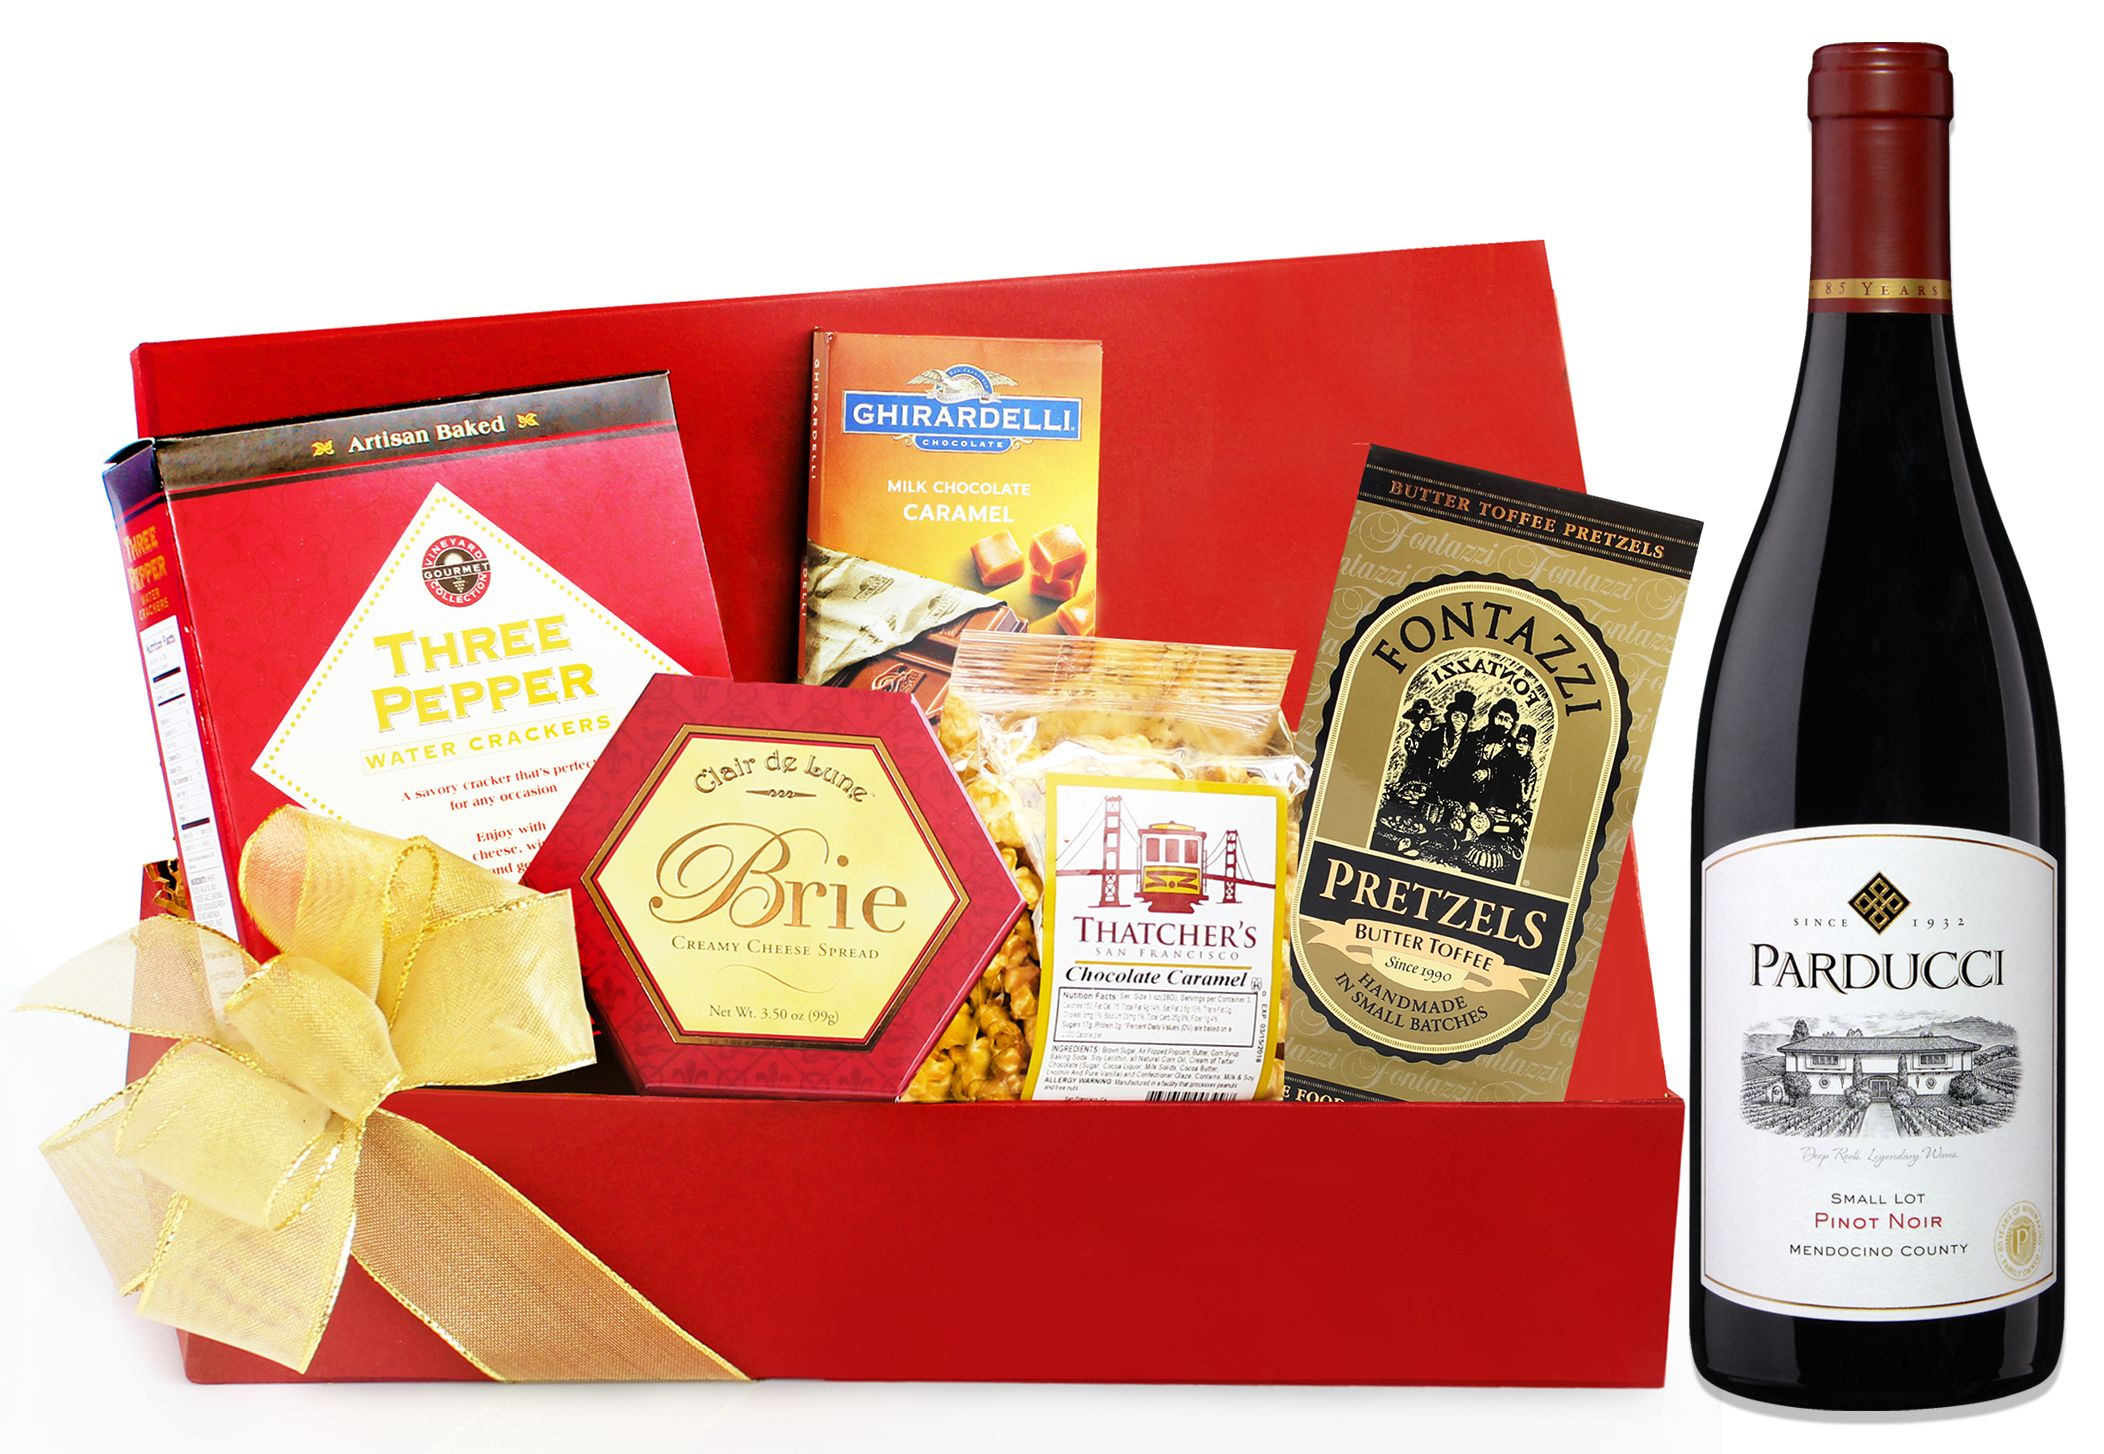 wine.com 90 Point Parducci Pinot Noir & Tempting Treats Gift Basket  Gift Product Image